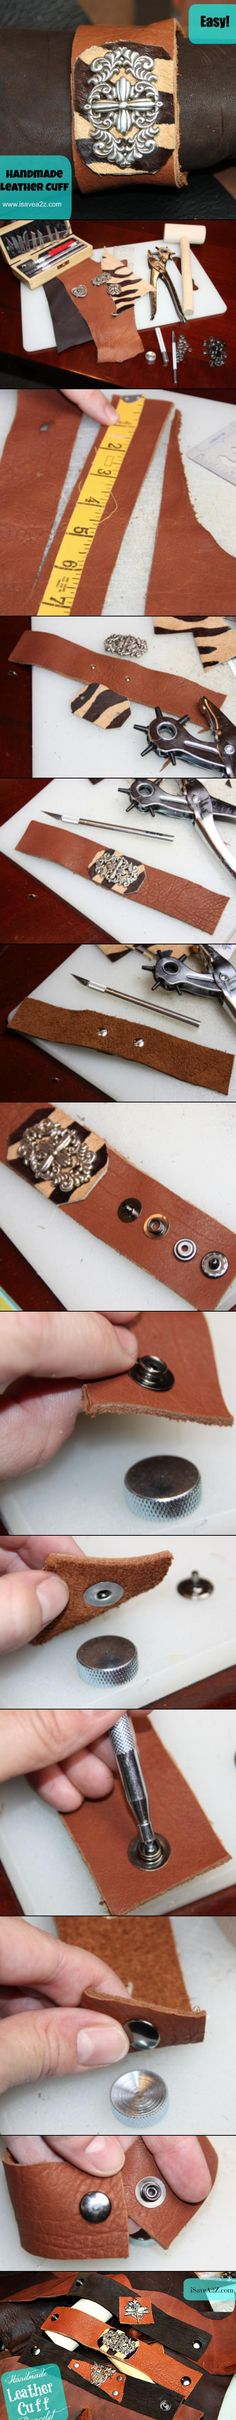 Leather Cuff Tutorial!  It's easier than you think!  Rings and Things has leather blanks, snaps, and setters.